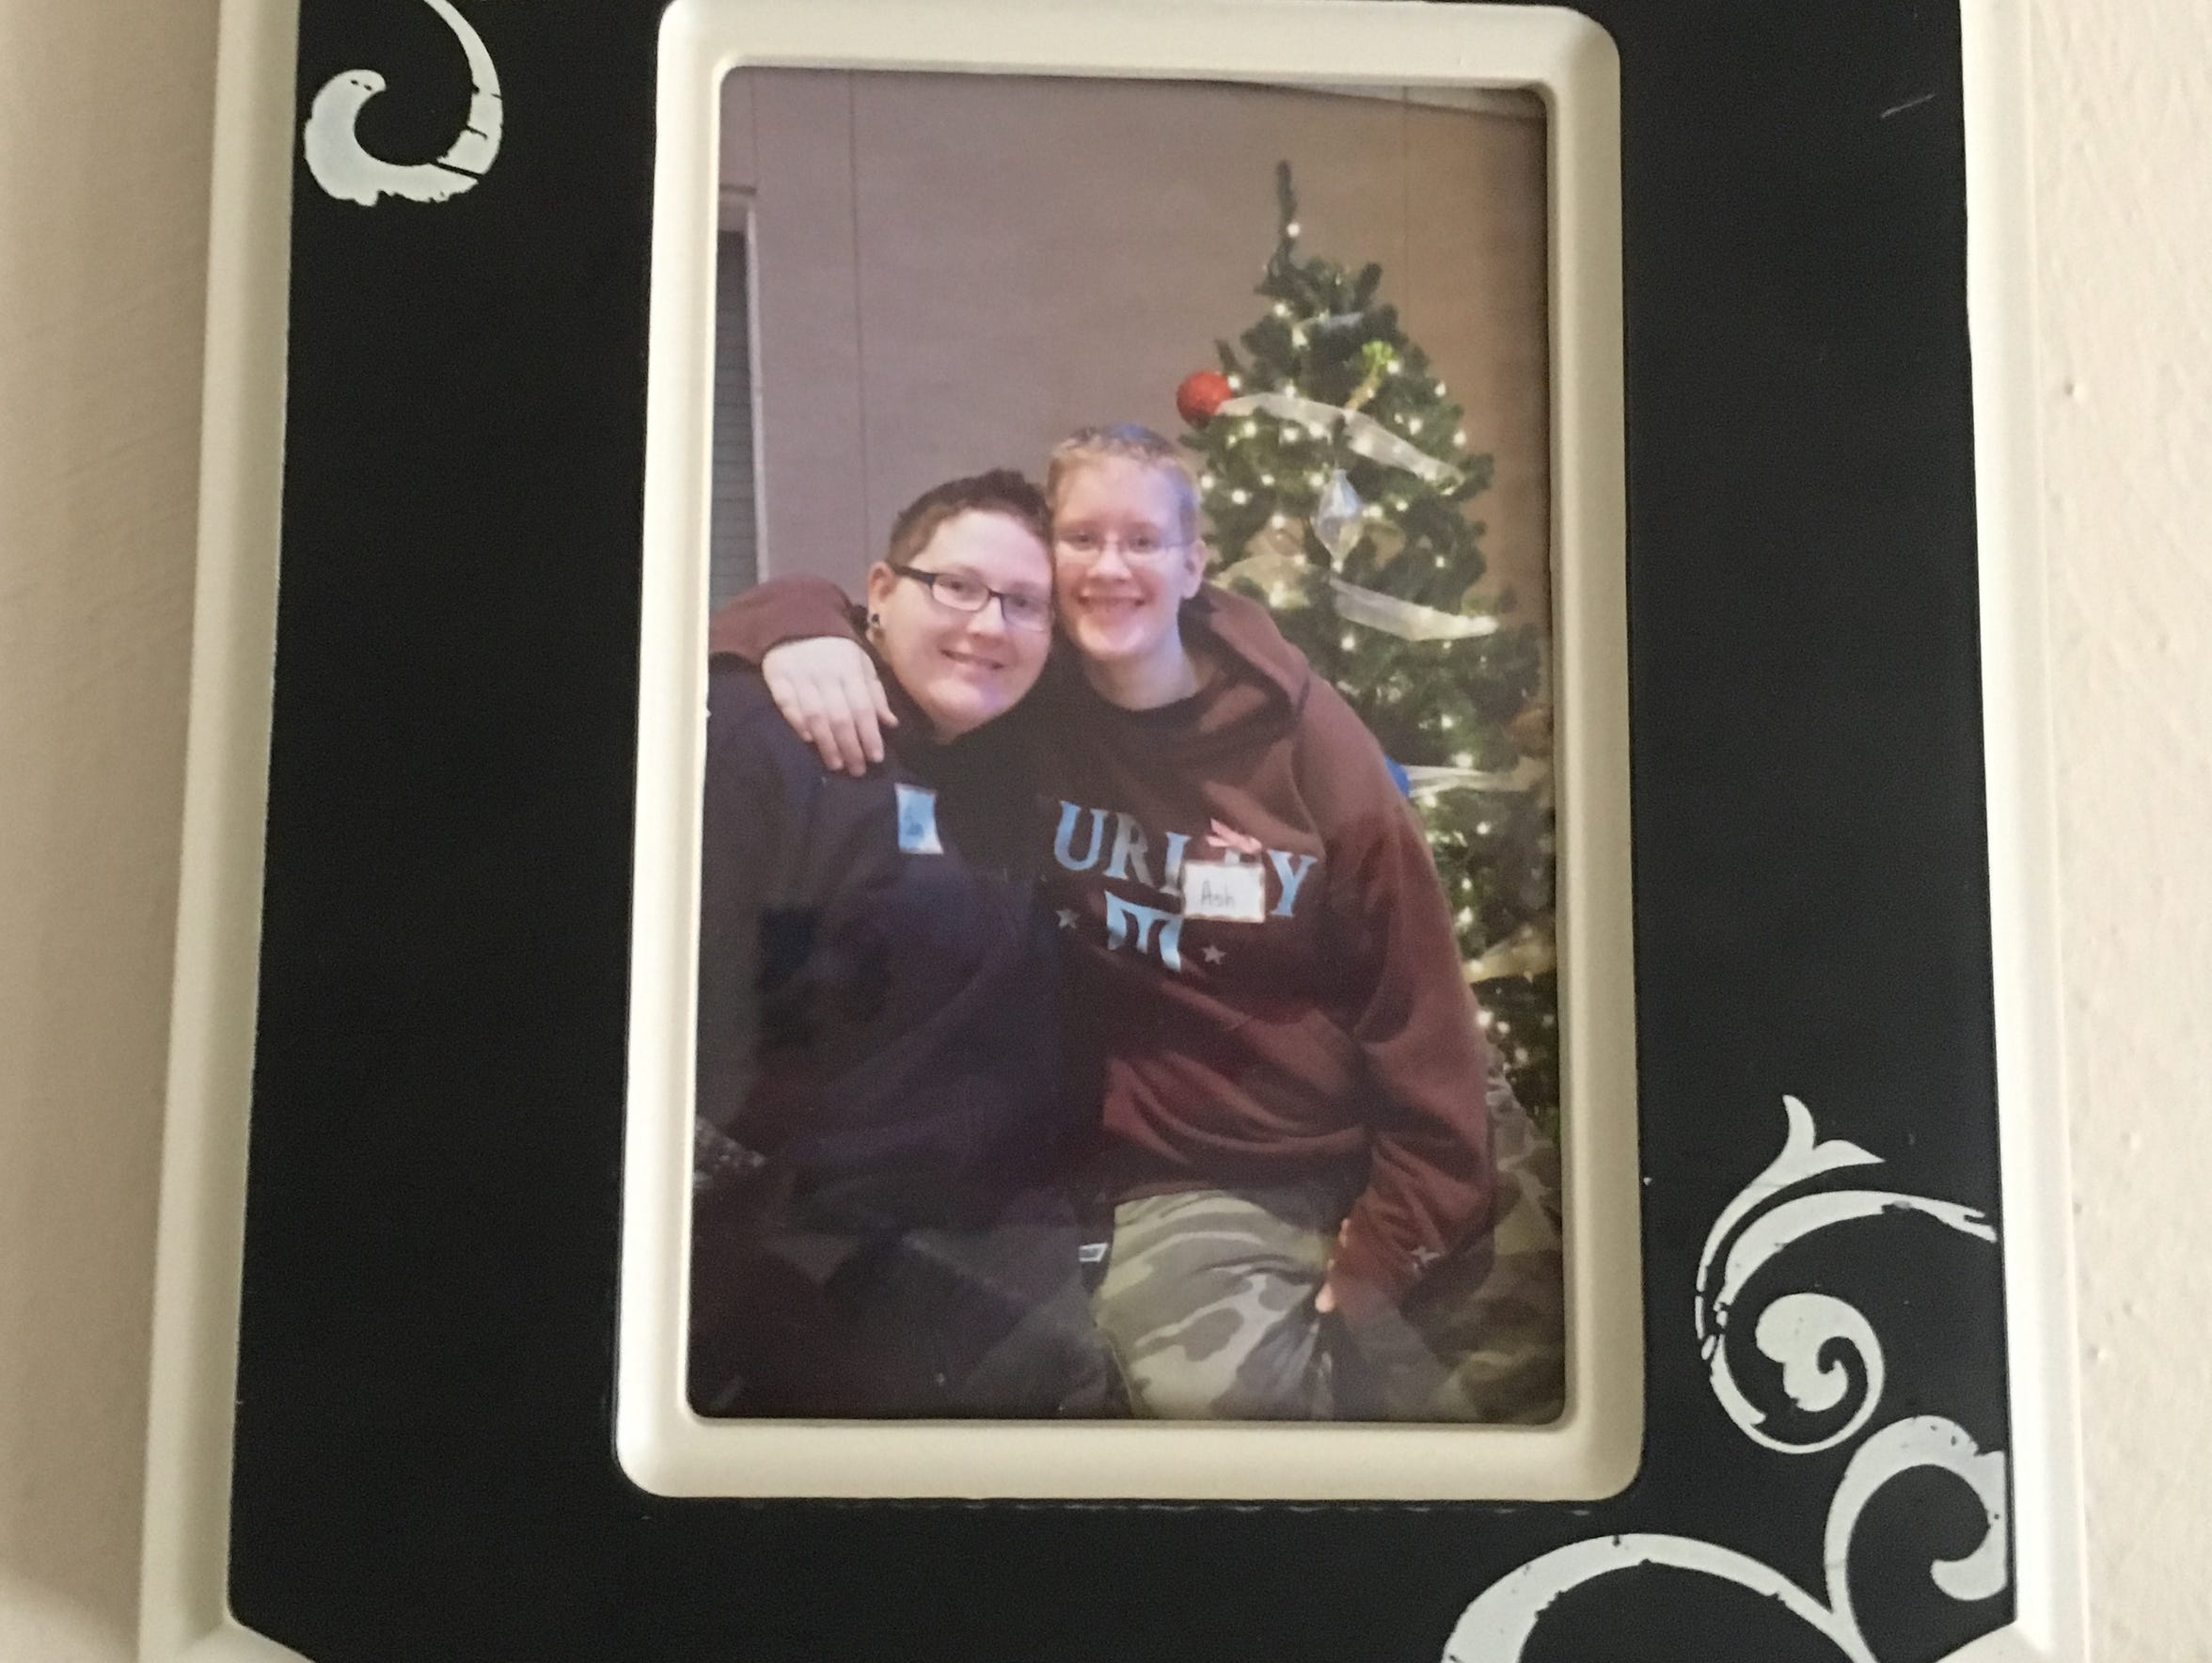 A Christmas picture of the couple hangs on a wall at